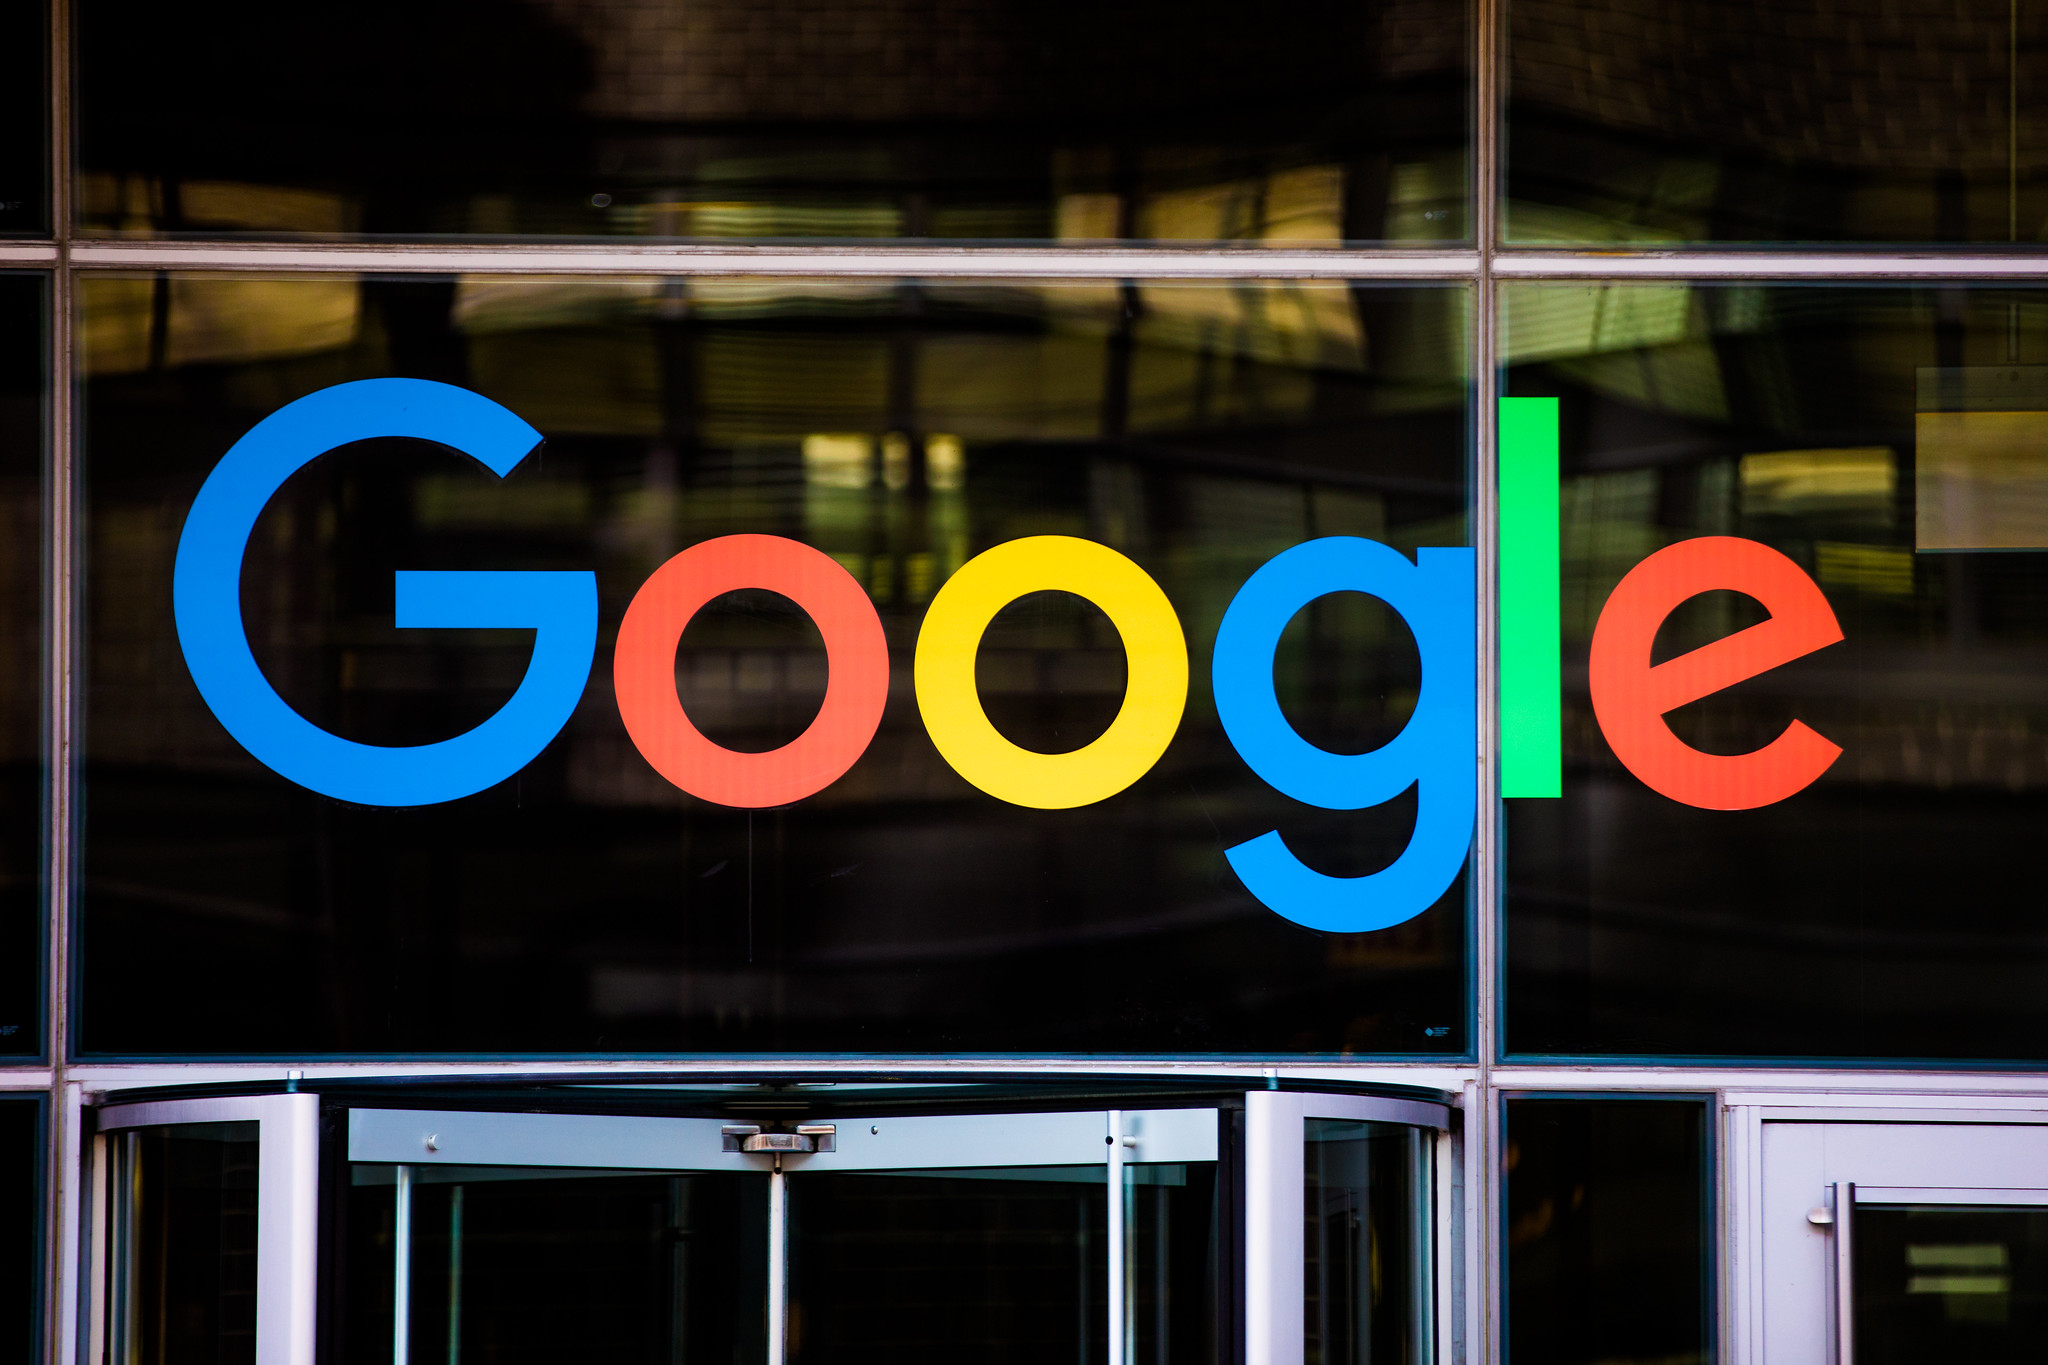 Google closes the service to check which operator has poor coverage. Surprised operators